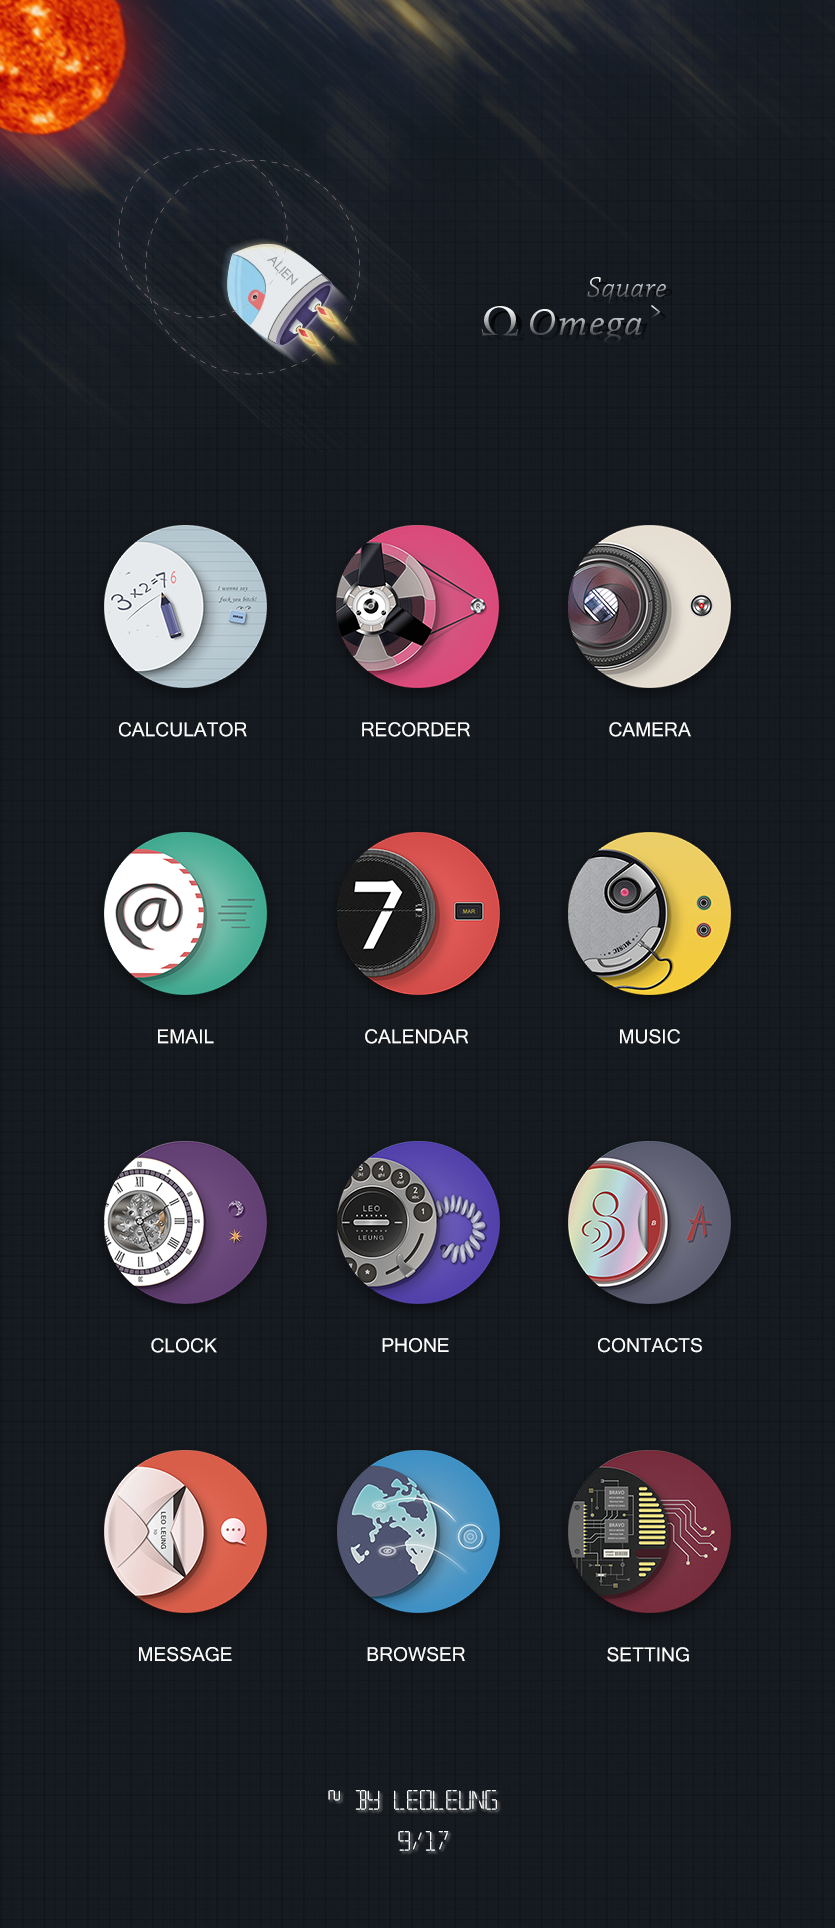 Omega Square Android theme Icons Android icon design